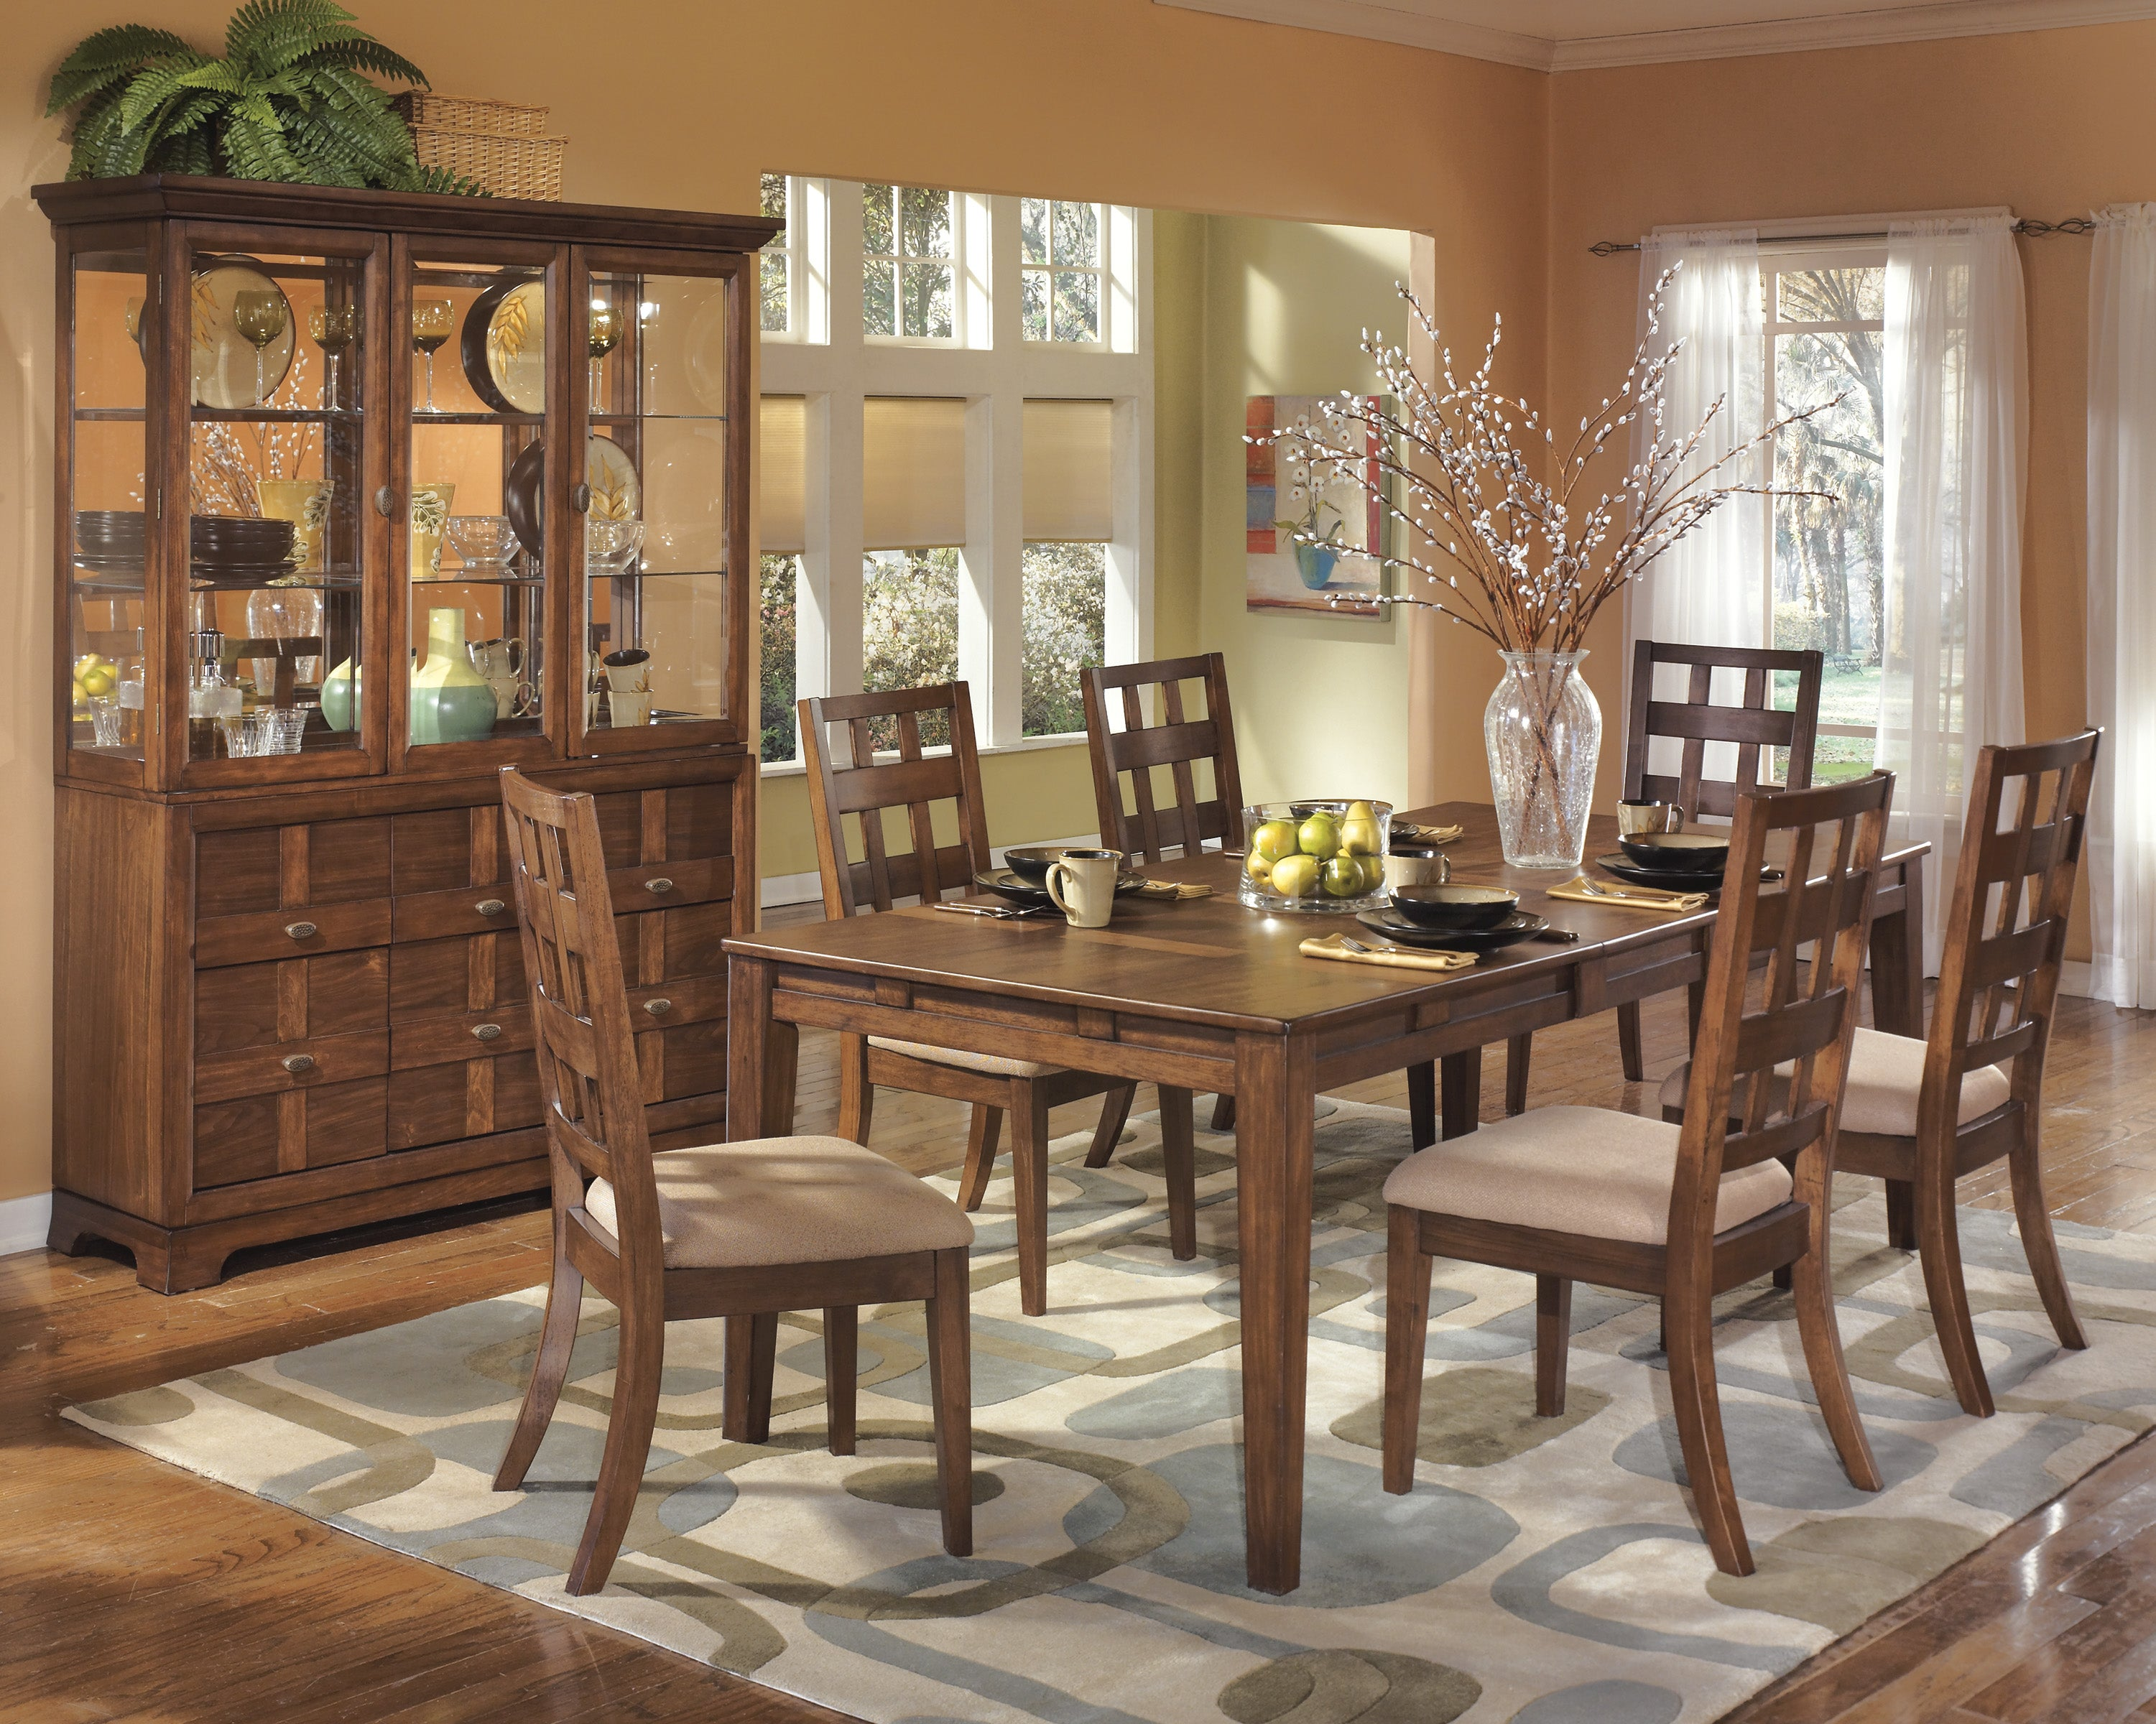 Signature Design by Ashley Clifton Park Dining Room Extension Table